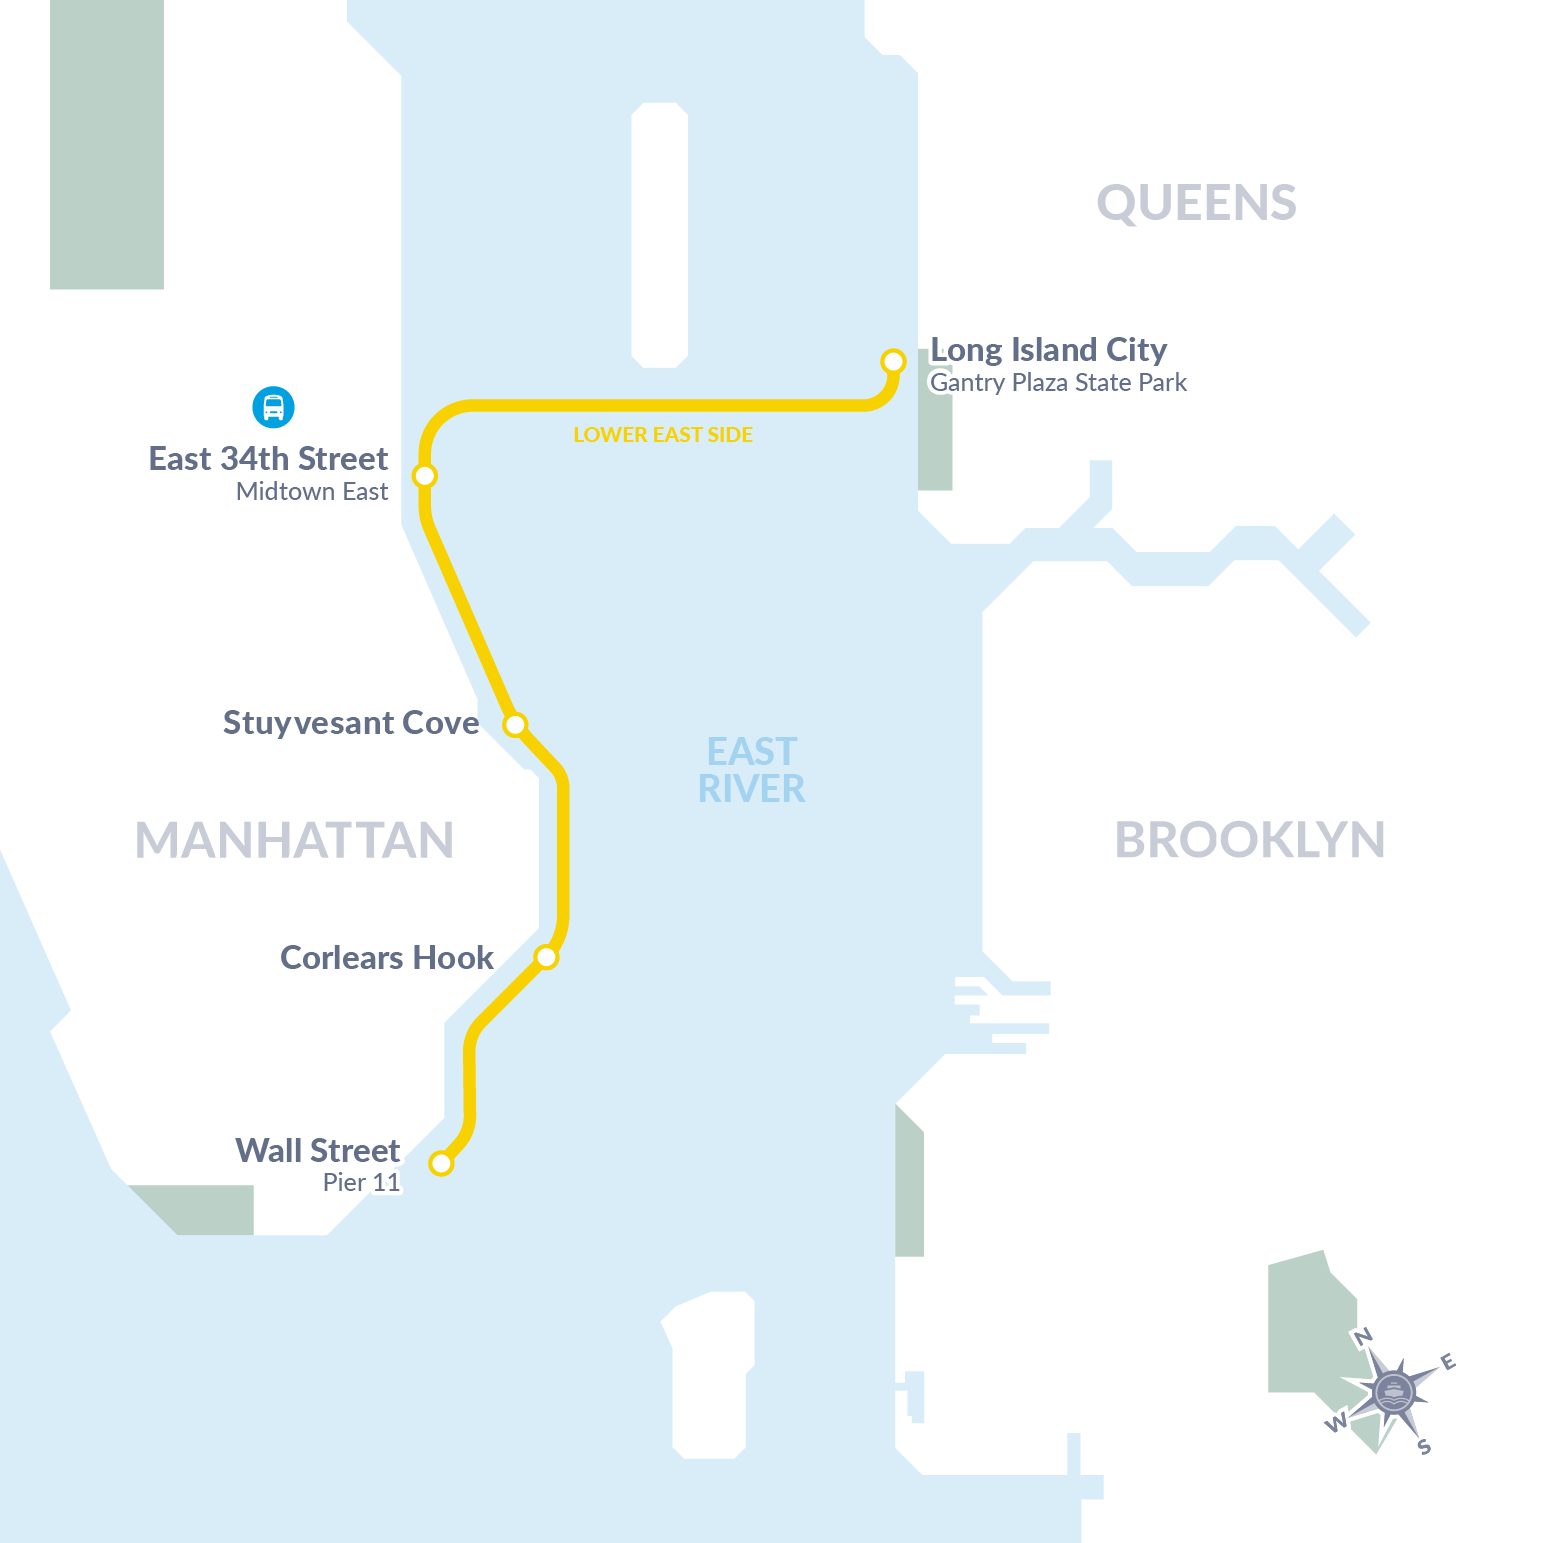 connects Long Island City, the Lower East Side and Lower Manhattan Route